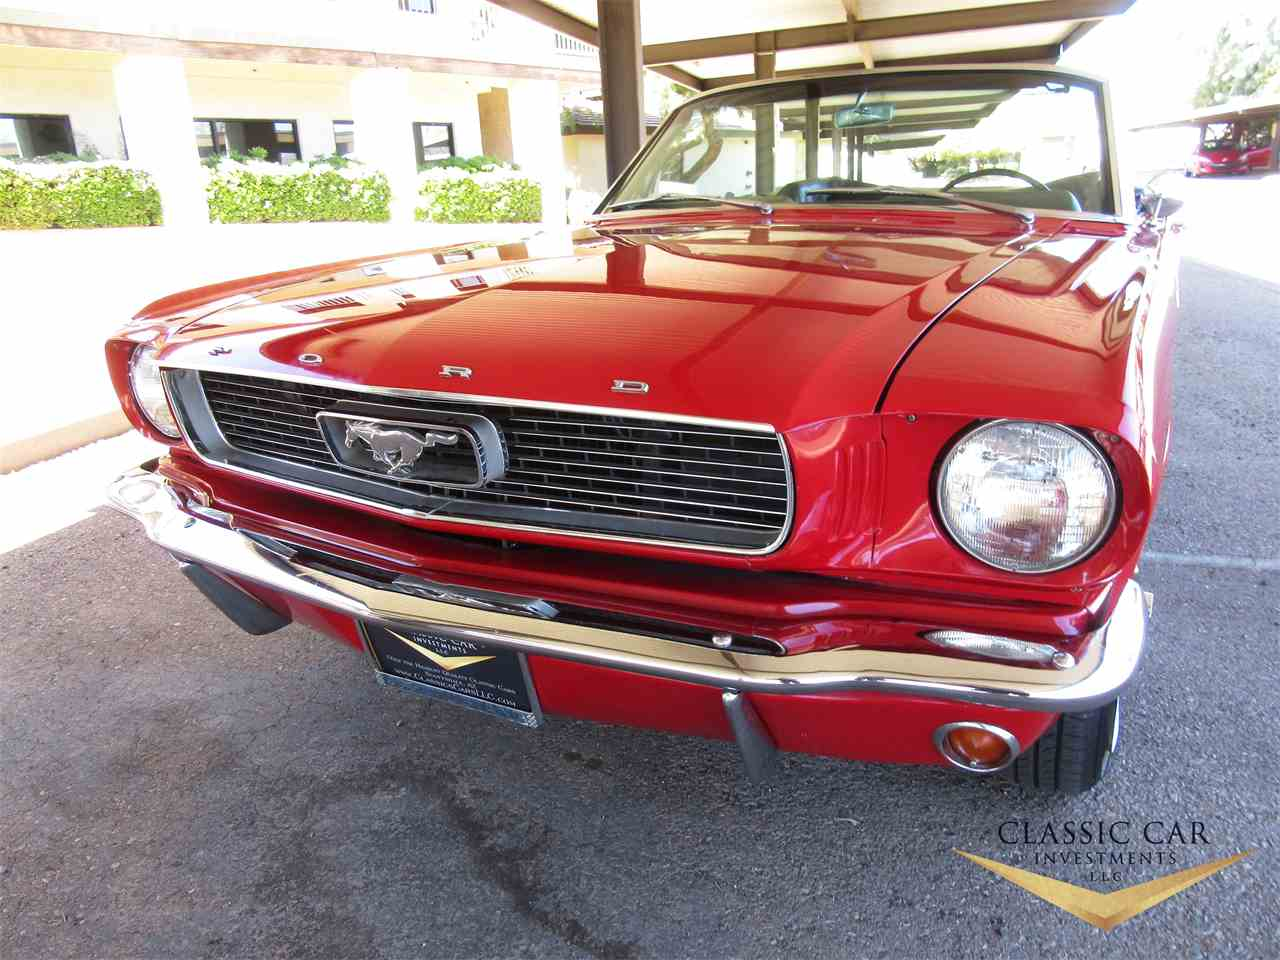 Large Picture of Classic '66 Ford Mustang - $29,500.00 Offered by Classic Car Investments LLC - MTOM